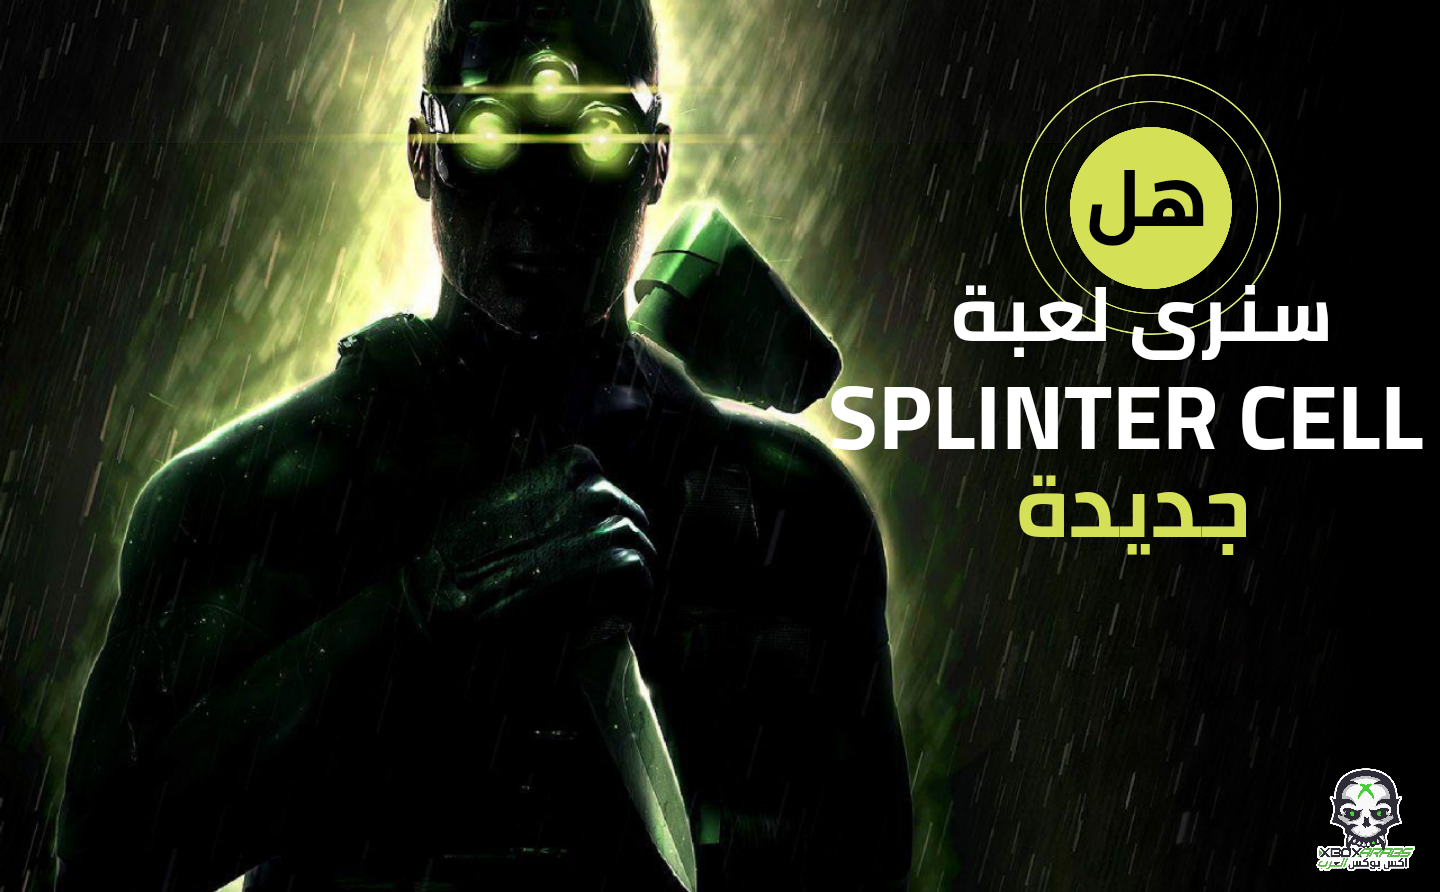 A New Splinter Cell game